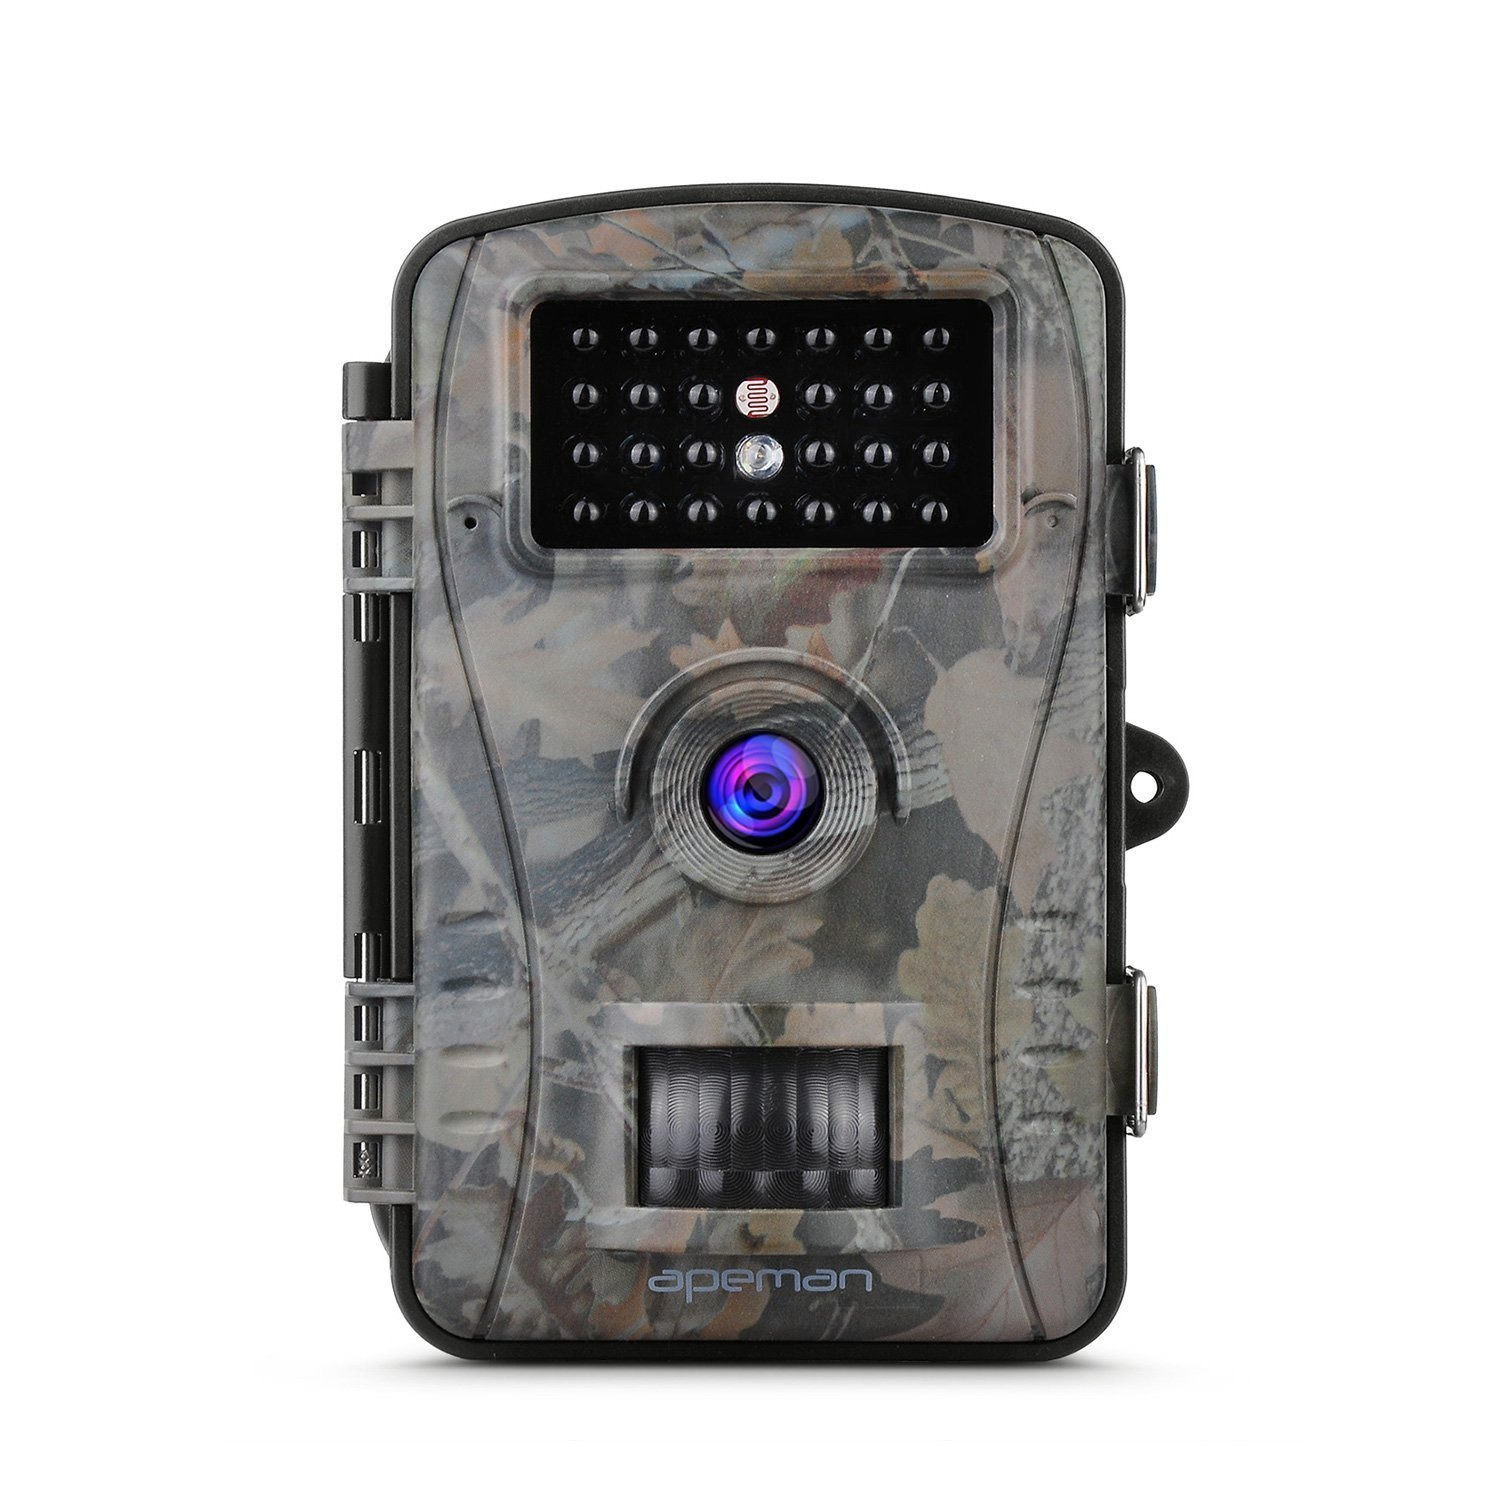 Game Cameras | Amazon.com: Hunting Optics, Game Cams & Trail Cameras